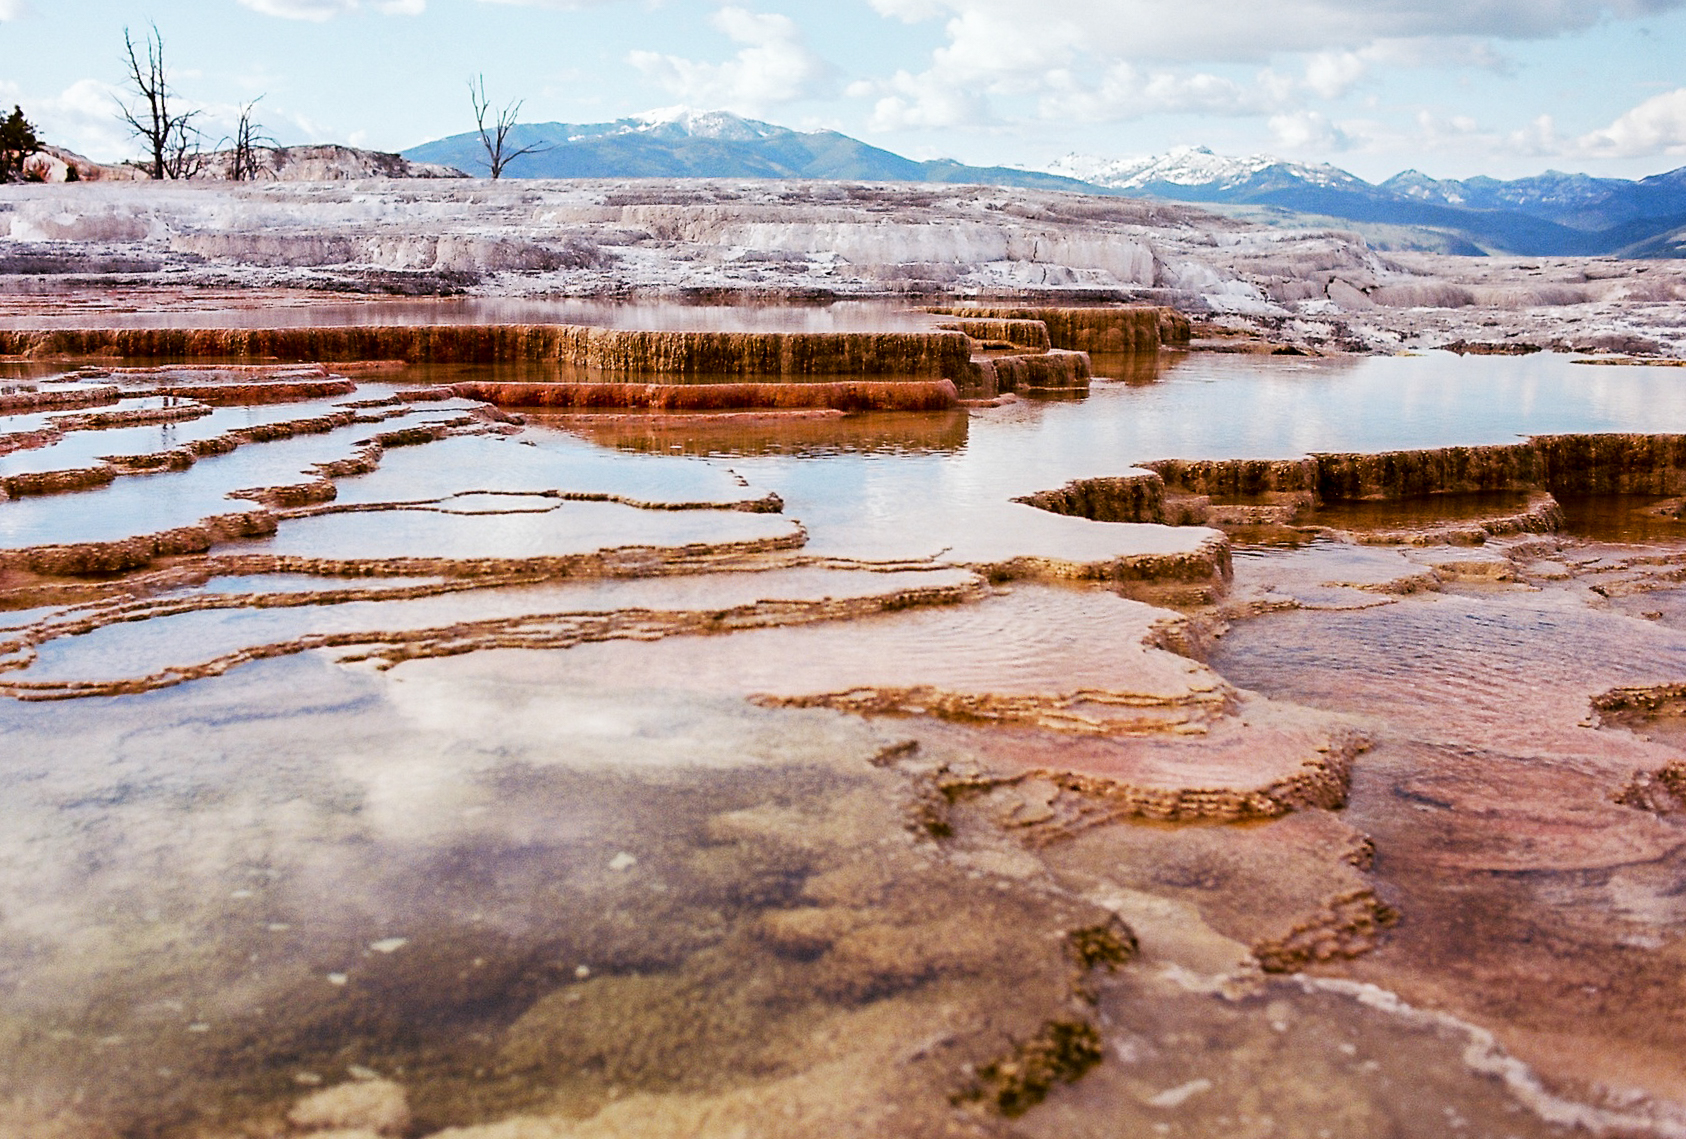 """Fountains of Youth"" Yellowstone National Park, WY (May 27, 2017)    Mammoth Hot Springs is, in my opinion, one of the eeriest places in Yellowstone. I loved the juxtaposition of this photograph; the ho  t, sulfuric springs in the foreground, the scarce dead trees nearby, and the towering snow-capped mountains off in the distance."